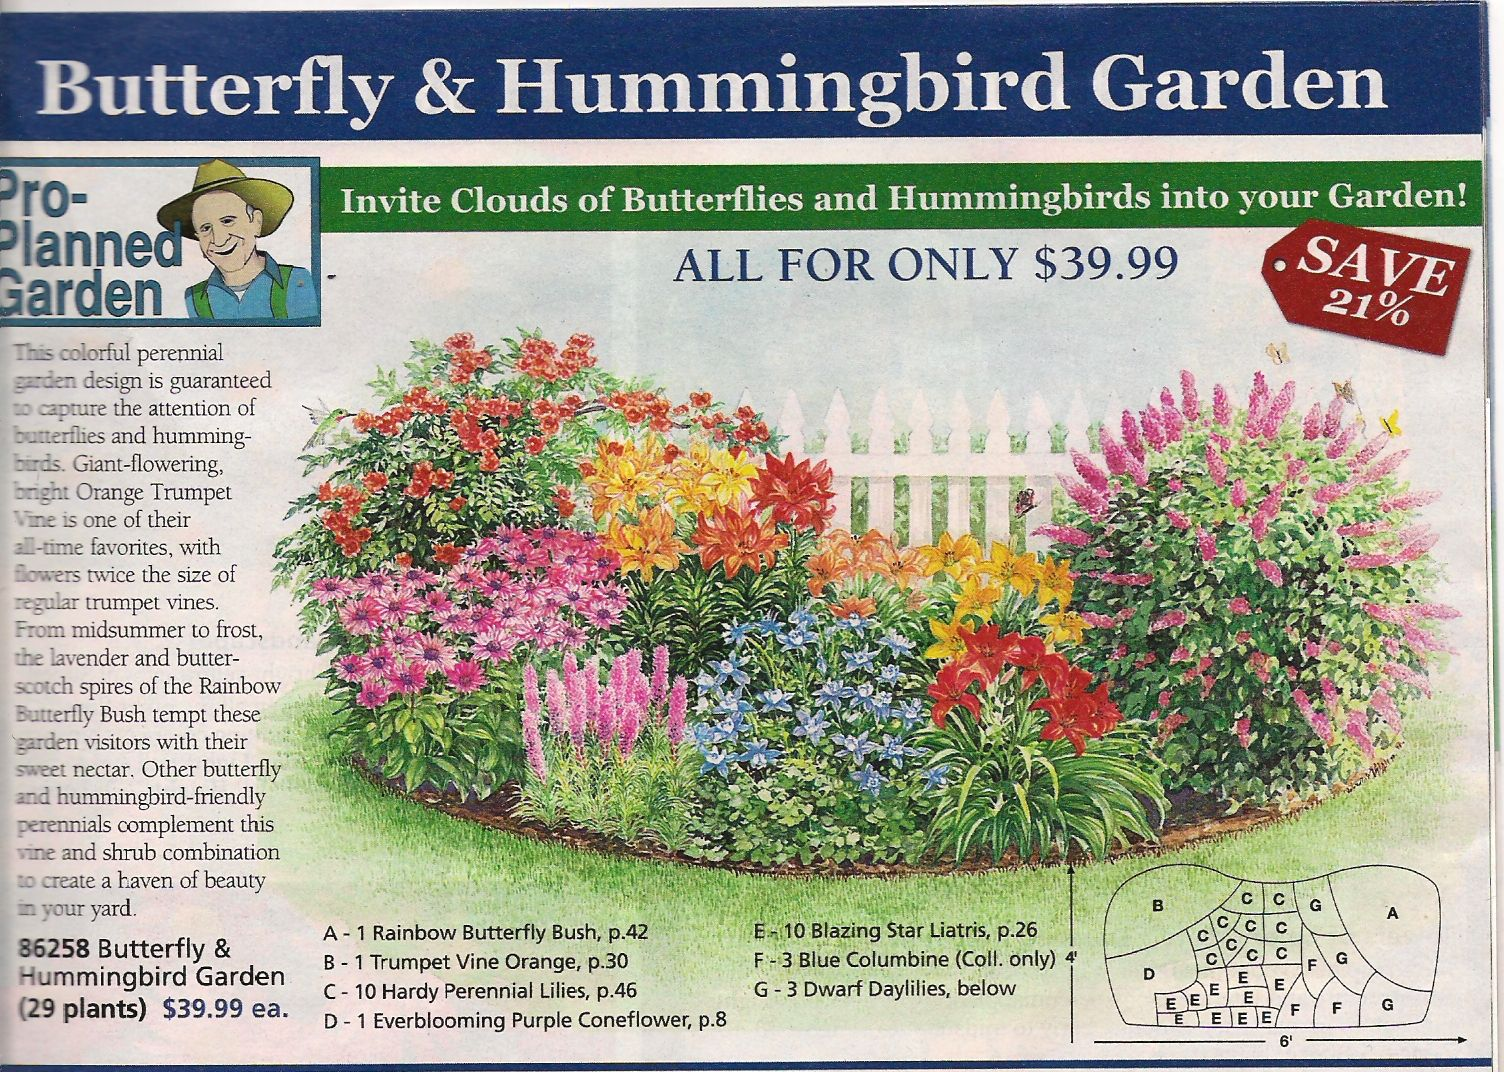 Garden plan from michigan bulb co for a butterfly garden for Flower garden layout